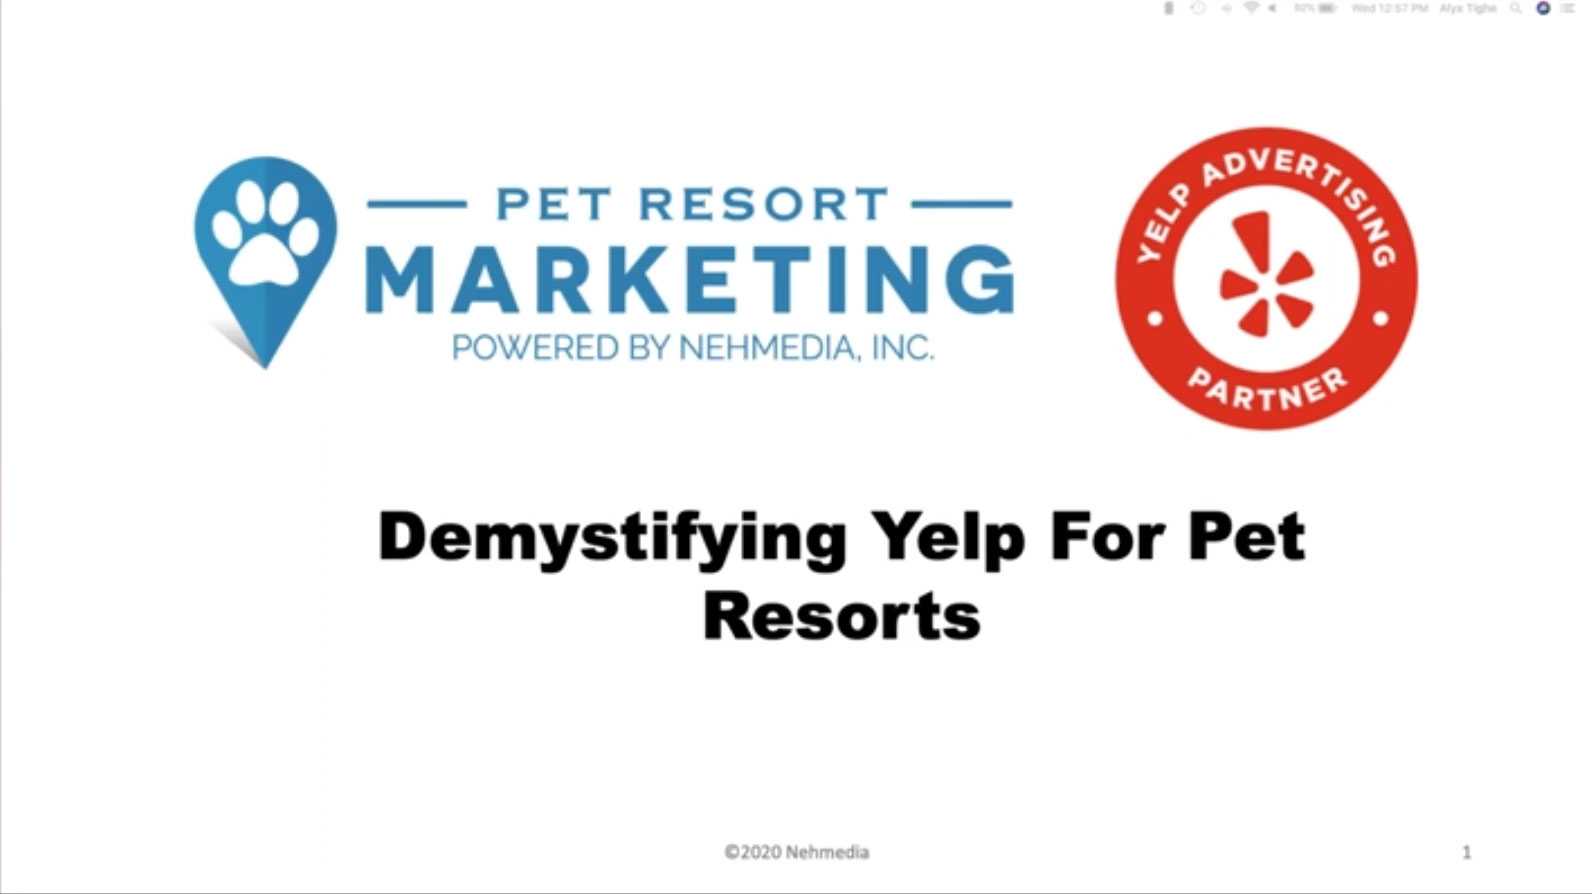 Demystifying Yelp for Pet Resorts